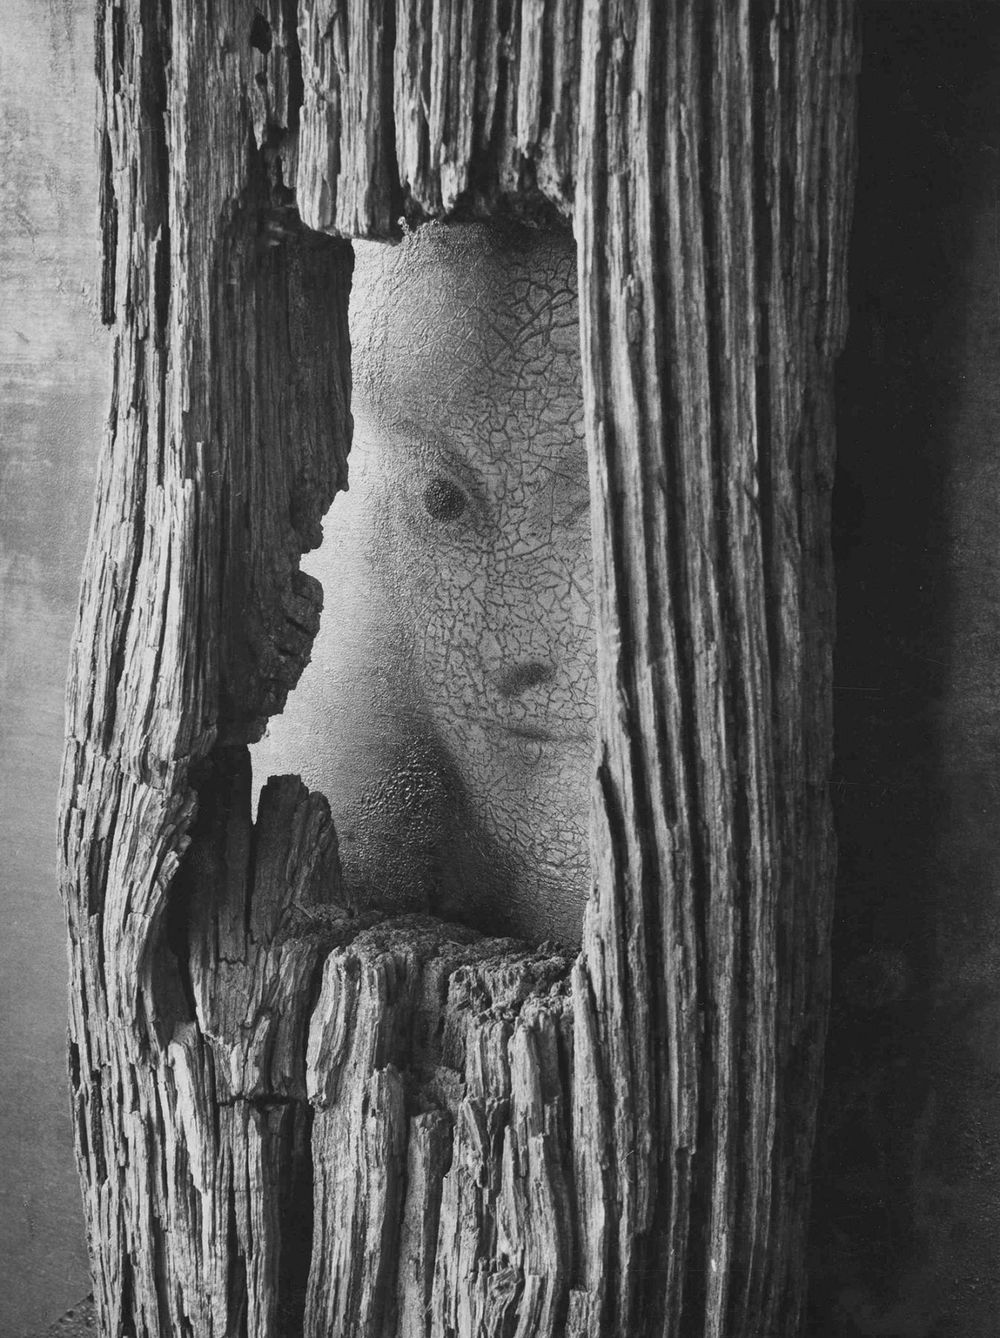 Untitled October 22, 1959 (Face In Wood). Photograph by André Kertész.